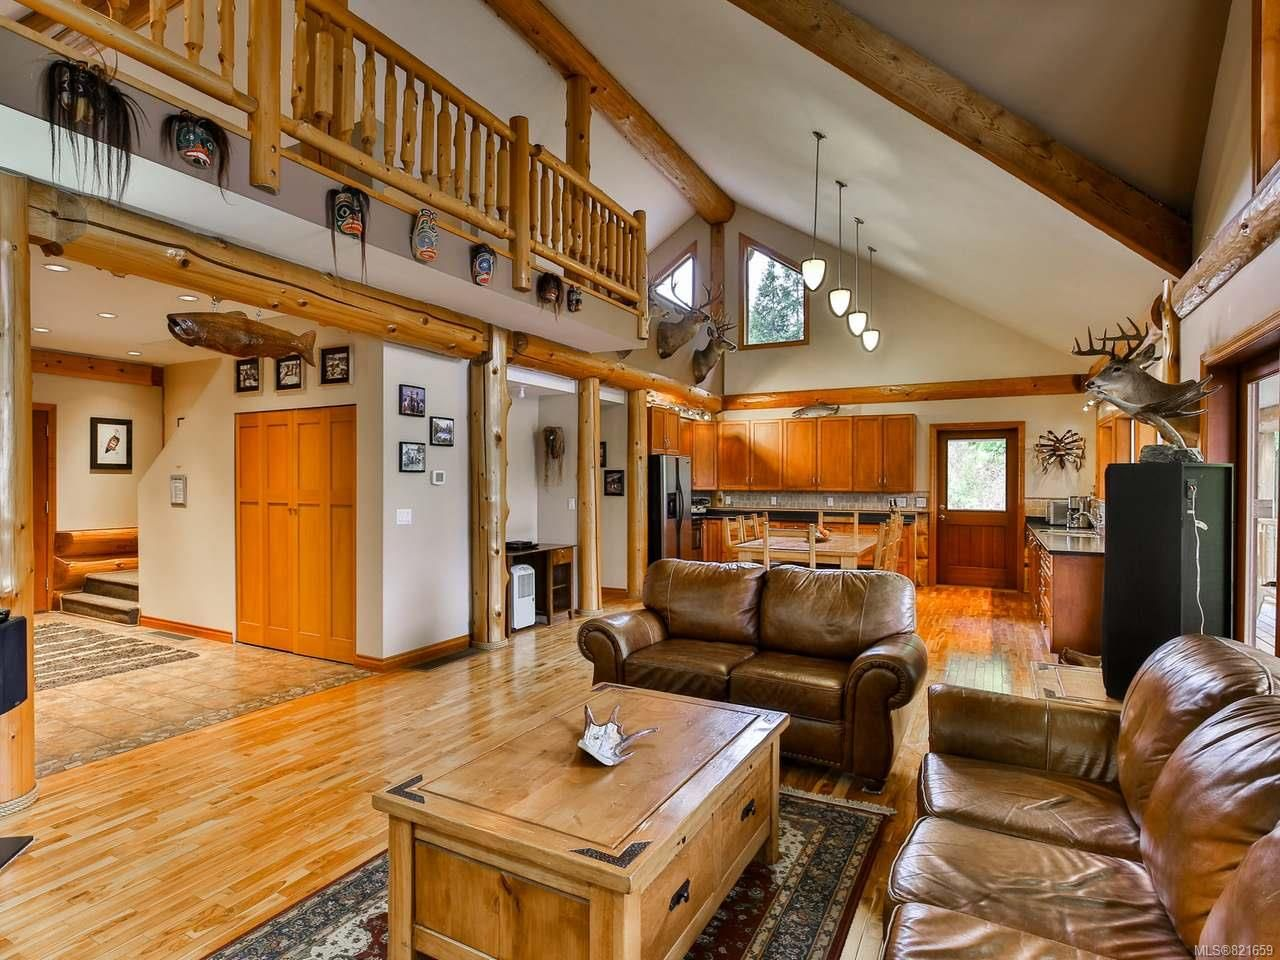 Photo 19: Photos: 1049 Helen Rd in UCLUELET: PA Ucluelet House for sale (Port Alberni)  : MLS®# 821659